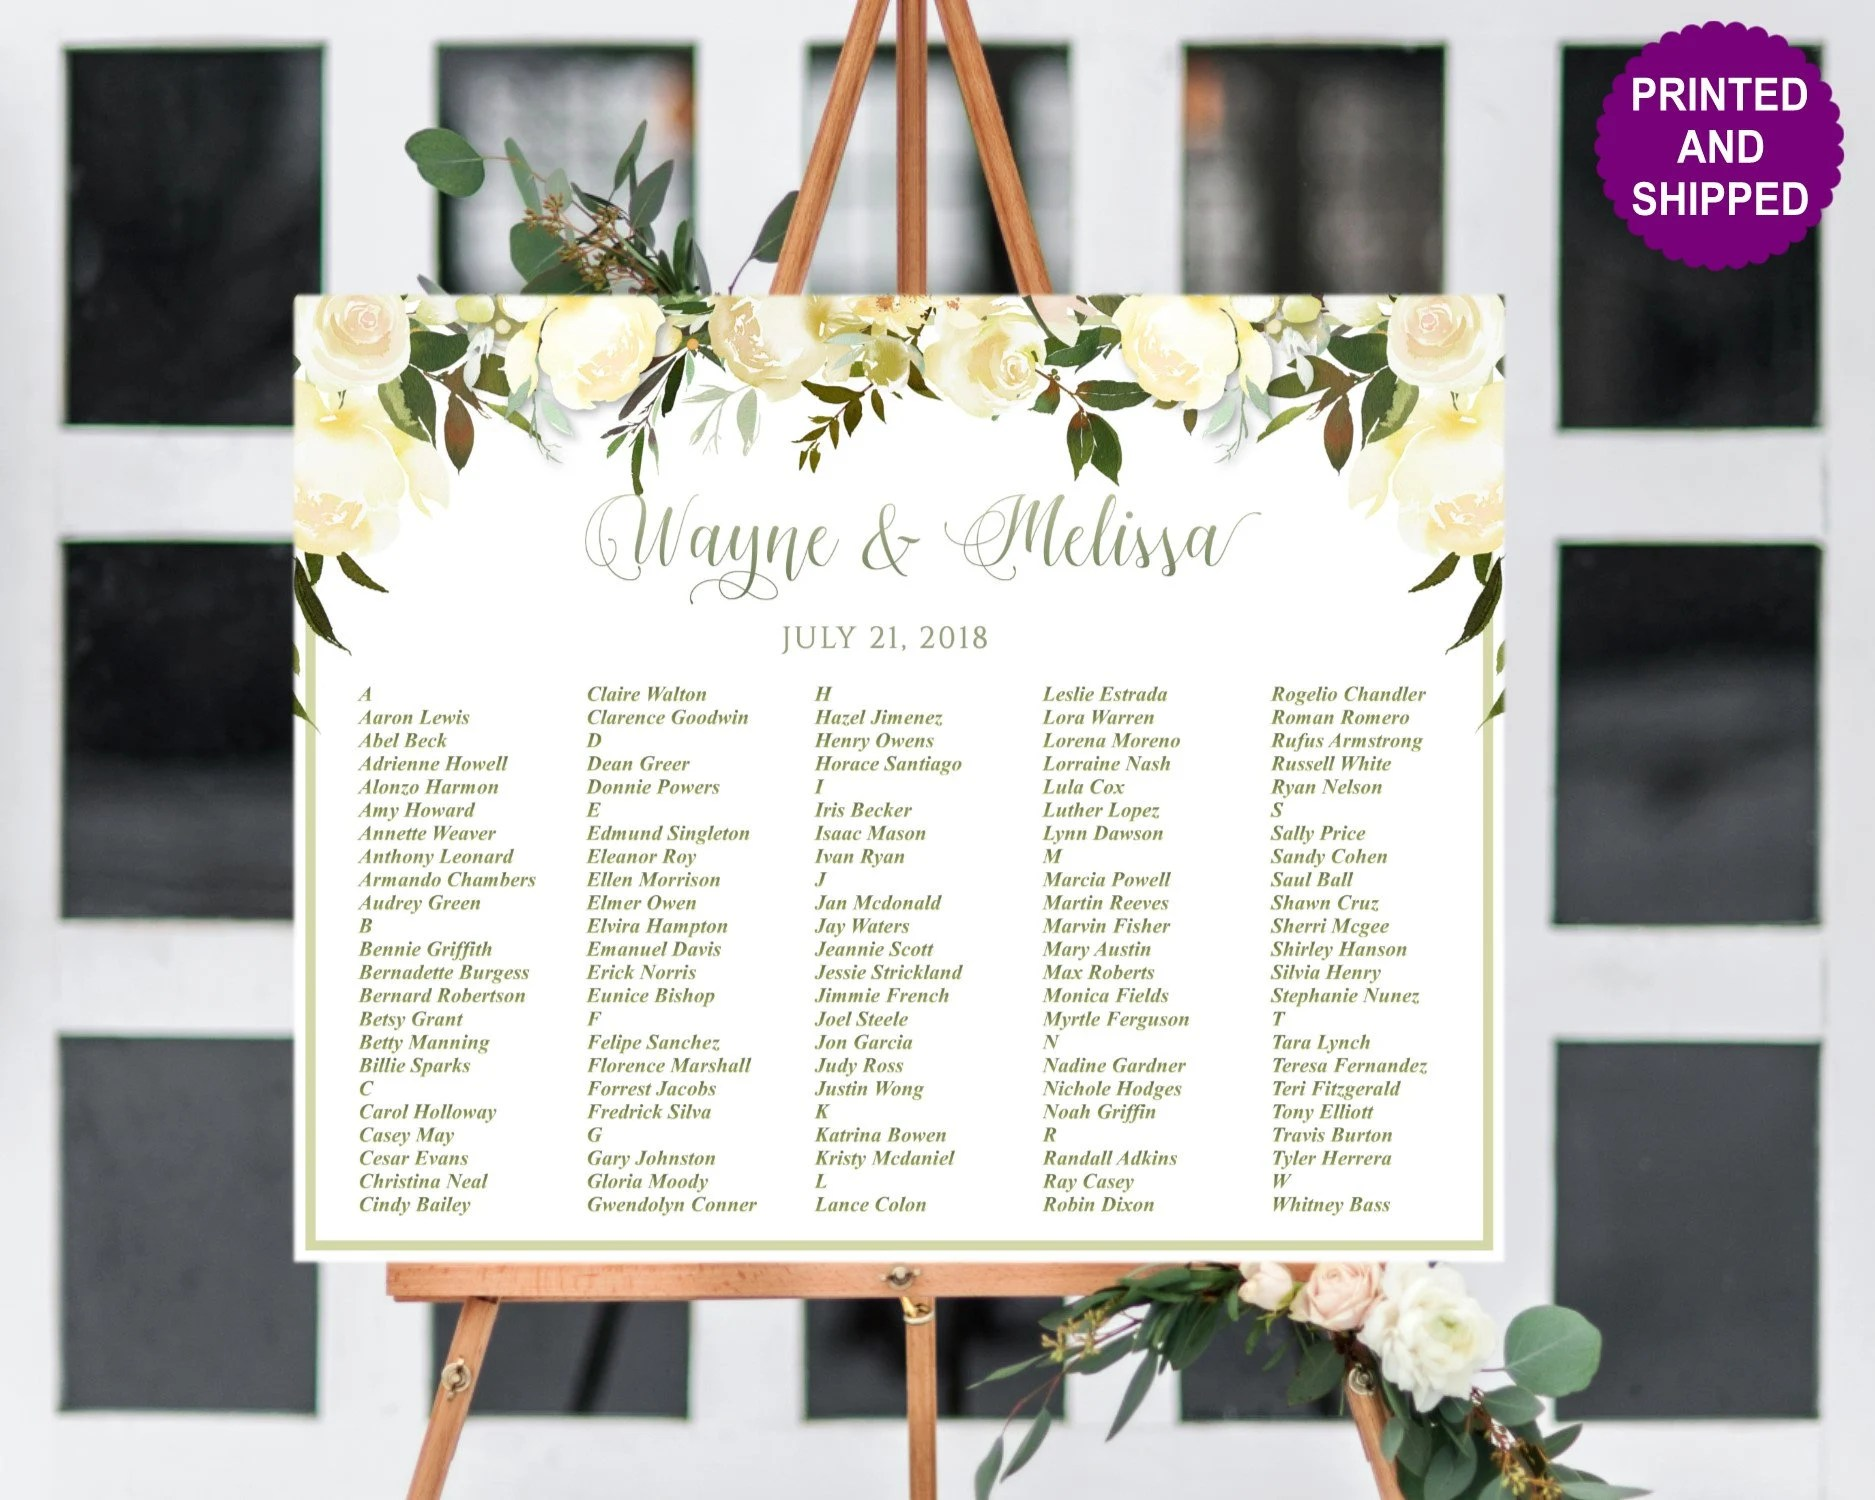 Printed greenery wedding seating chart green and white floral chartblush foam board or canvas also etsy rh